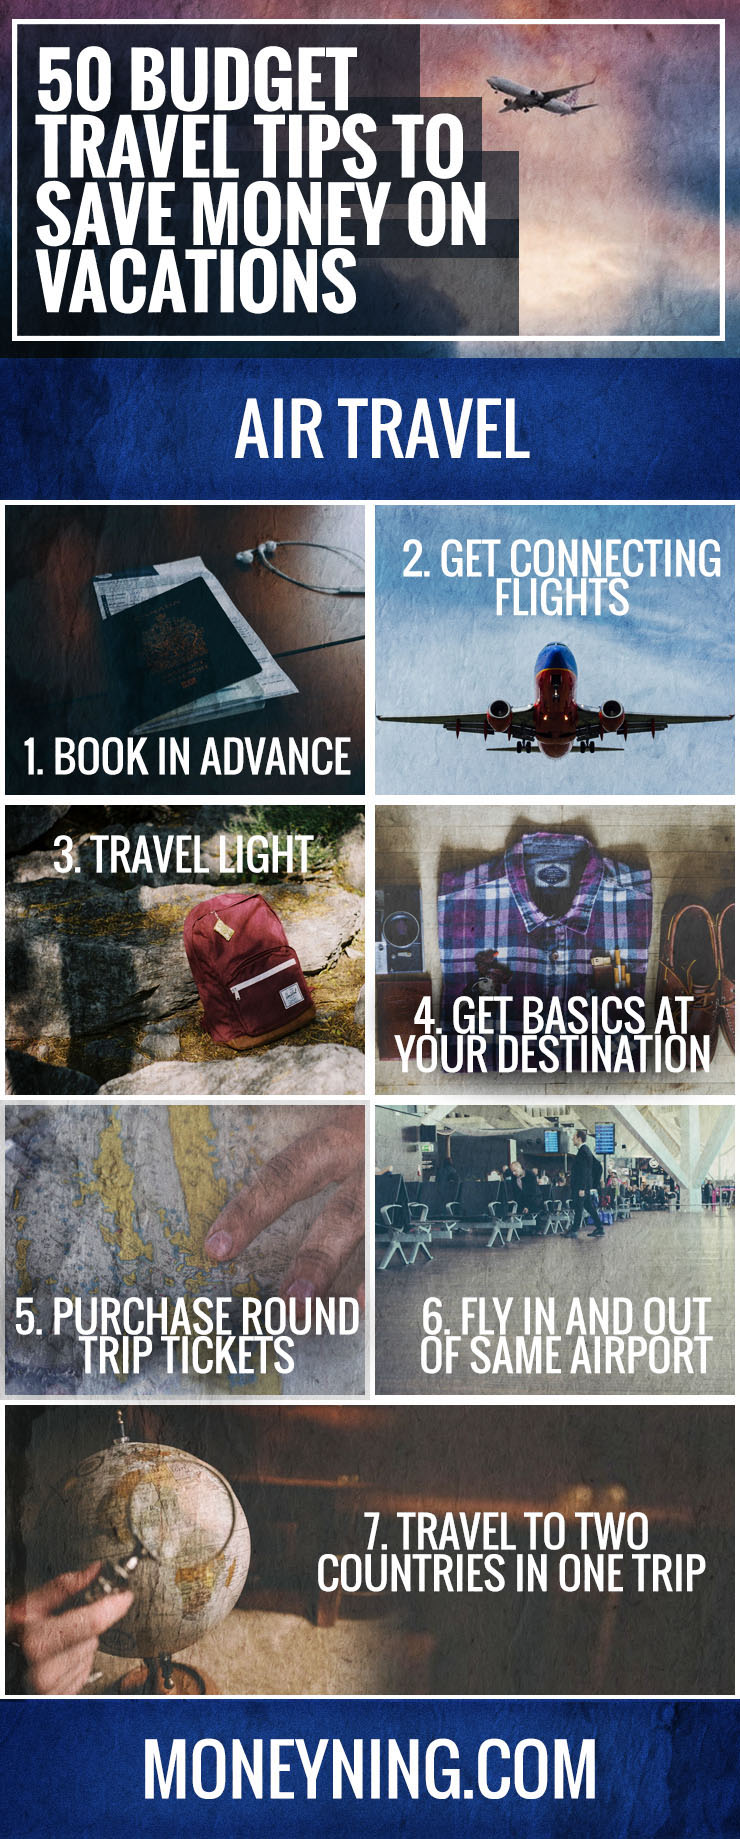 Budget Travel Tips To Save Money On Vacations - Budget vacations